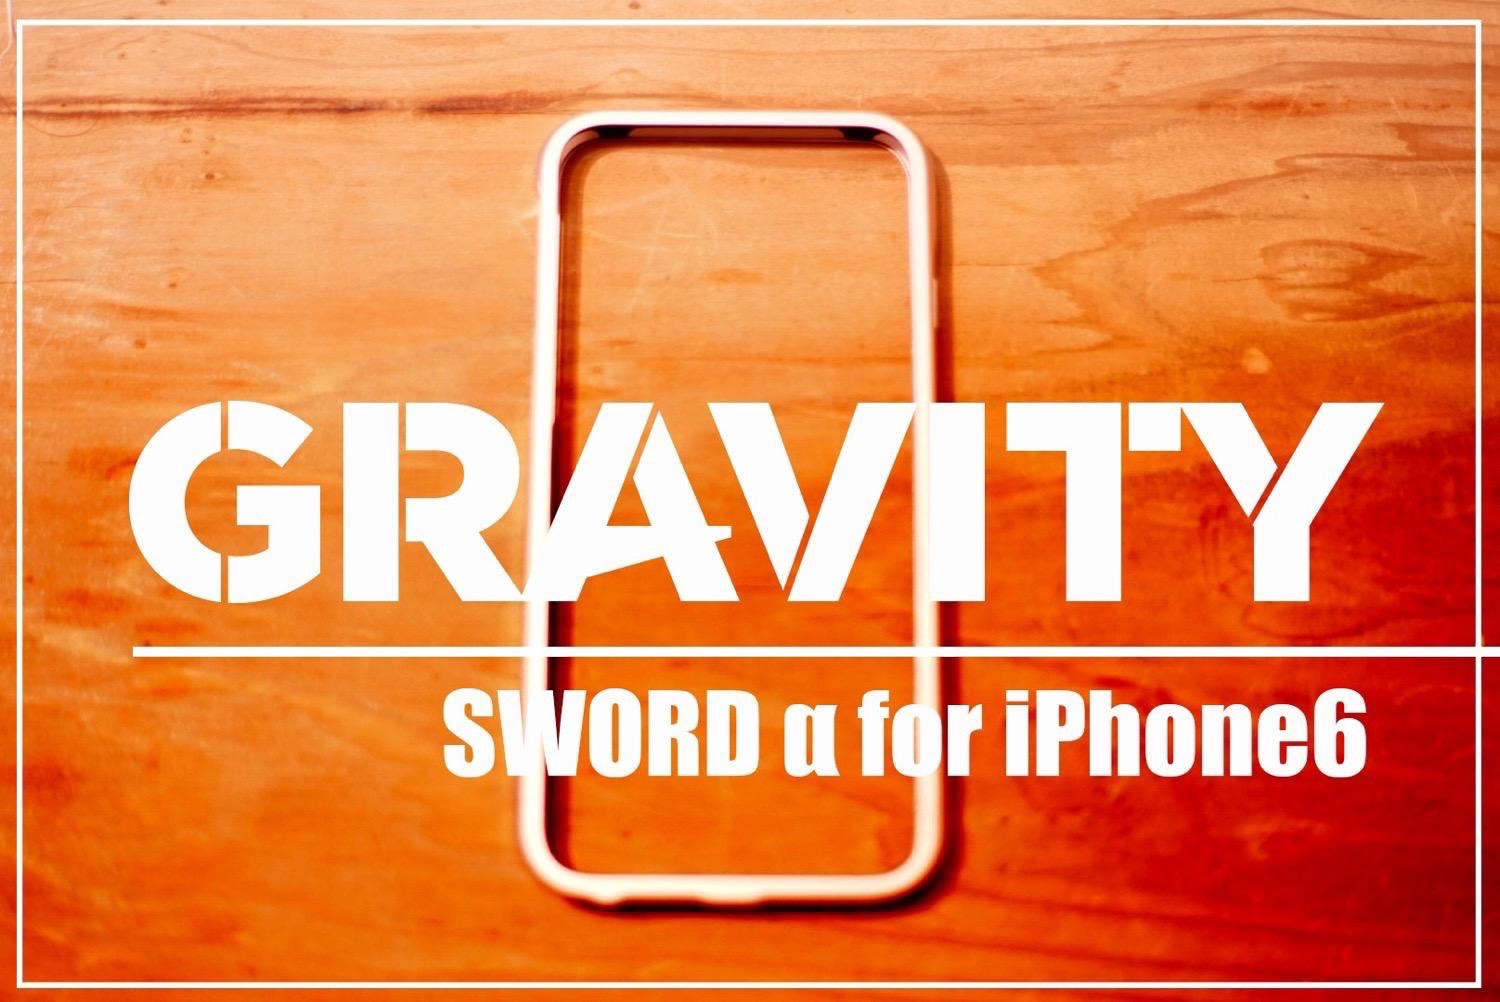 Gravity sword iphone6s20